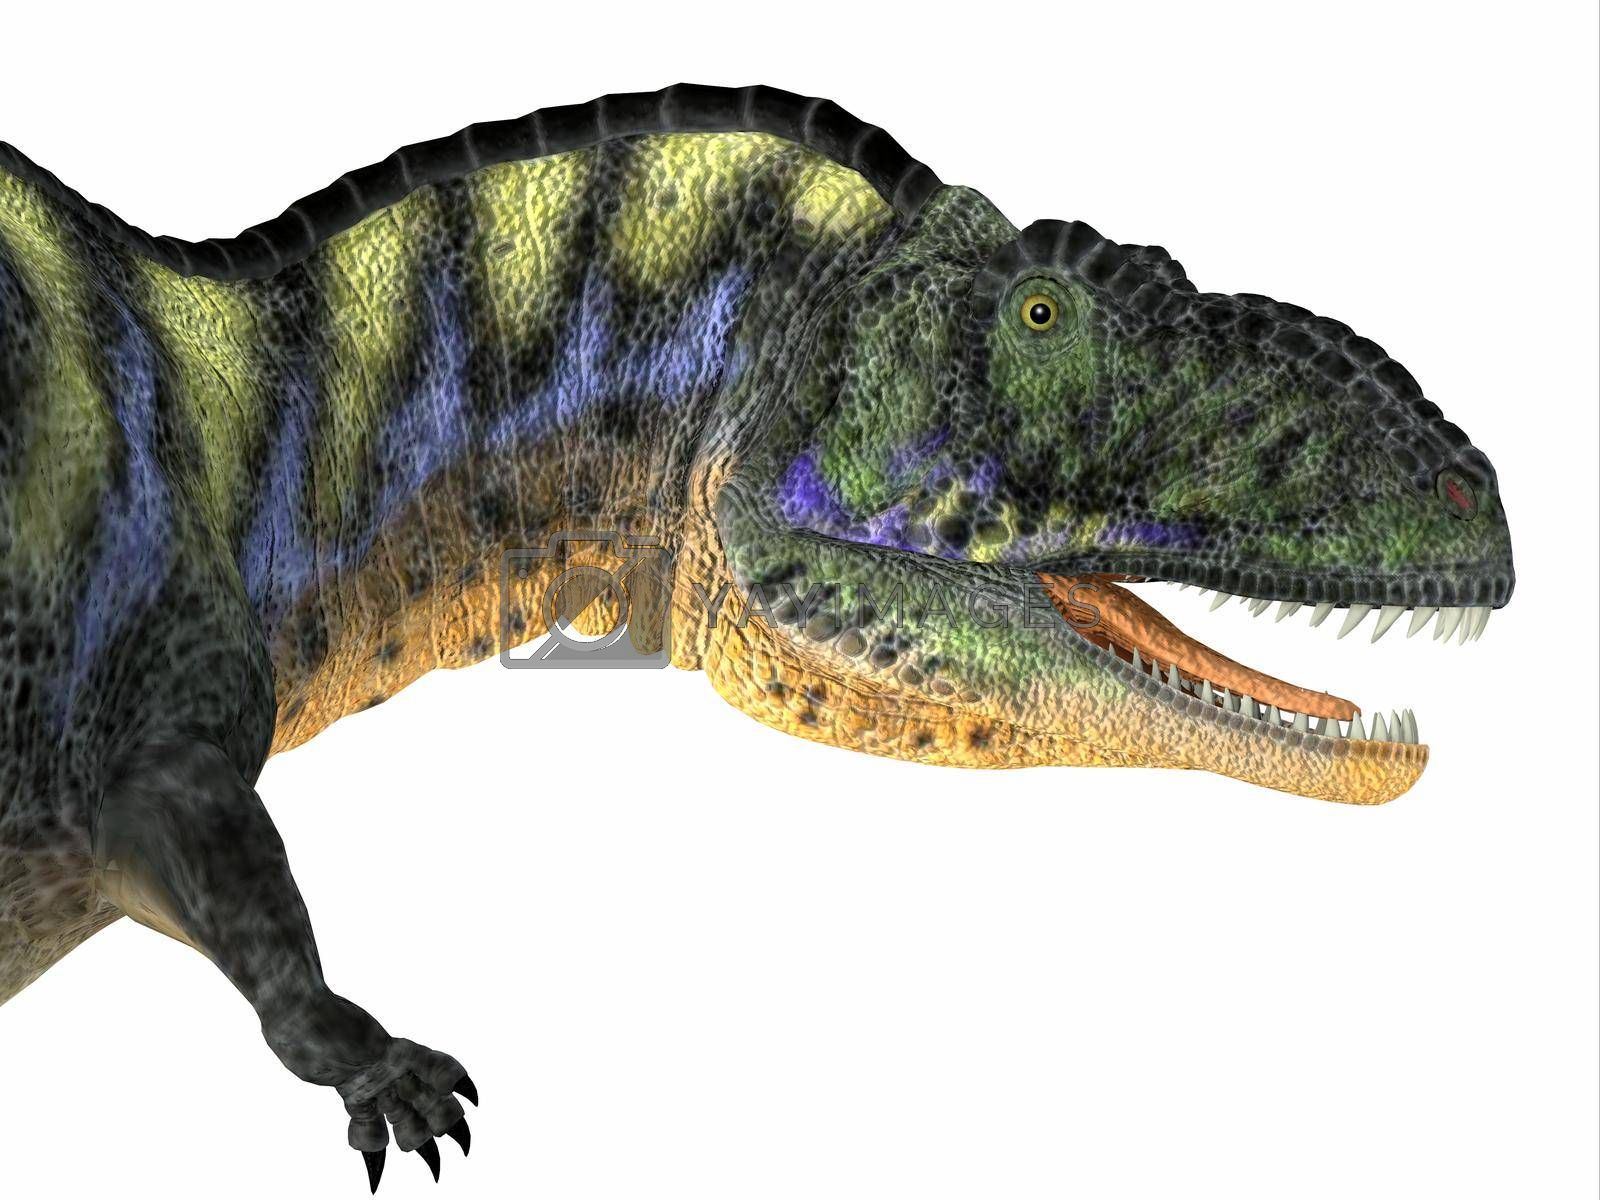 Aucasaurus was a carnivorous theropod dinosaur that lived in Argentina during the Cretaceous Period.